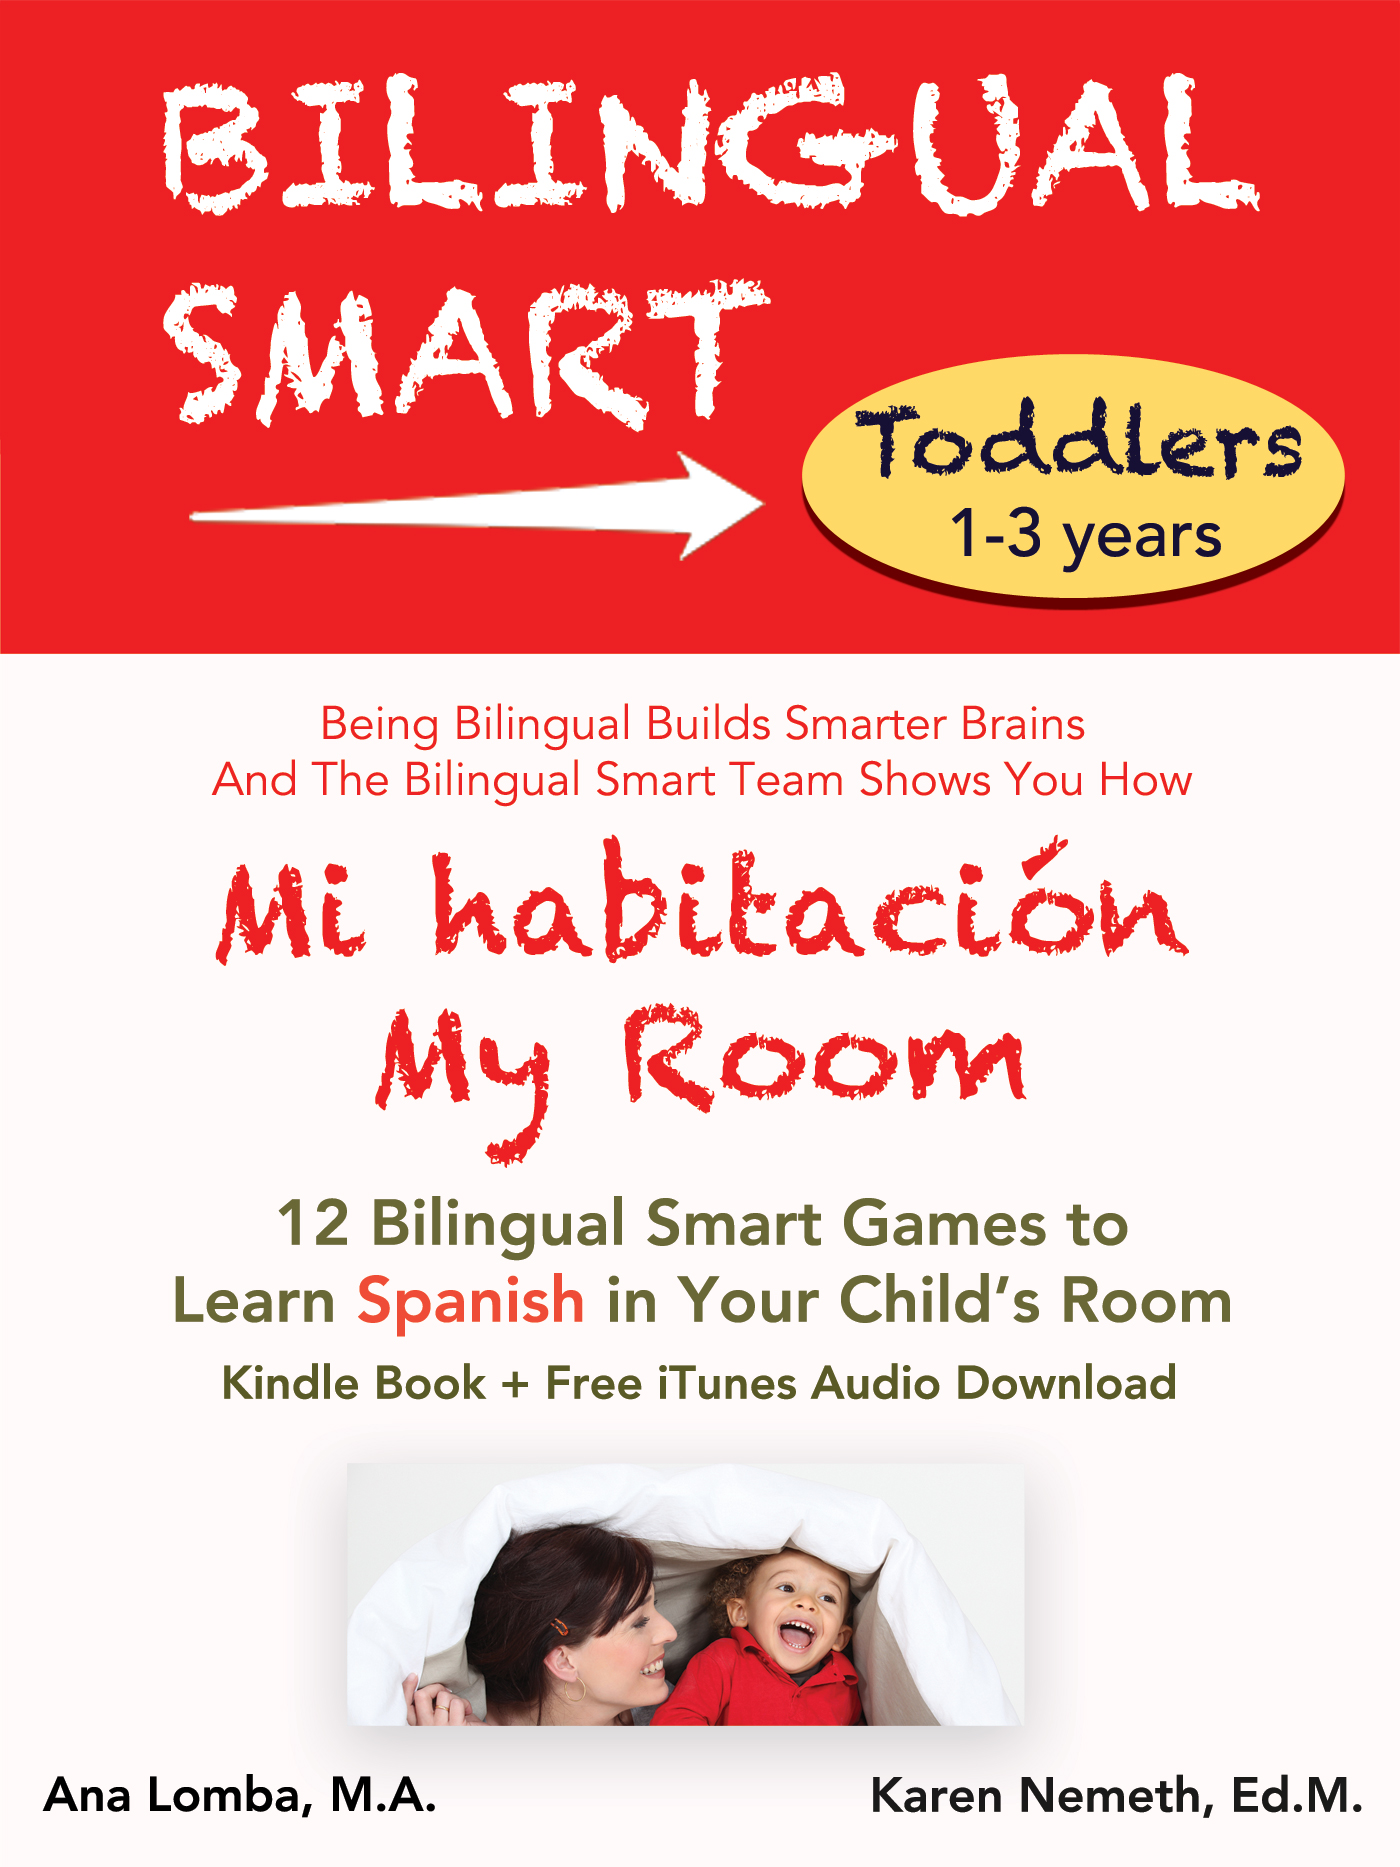 New Language Learning Series for Toddlers Helps Build Fluency Through Bilingual Games